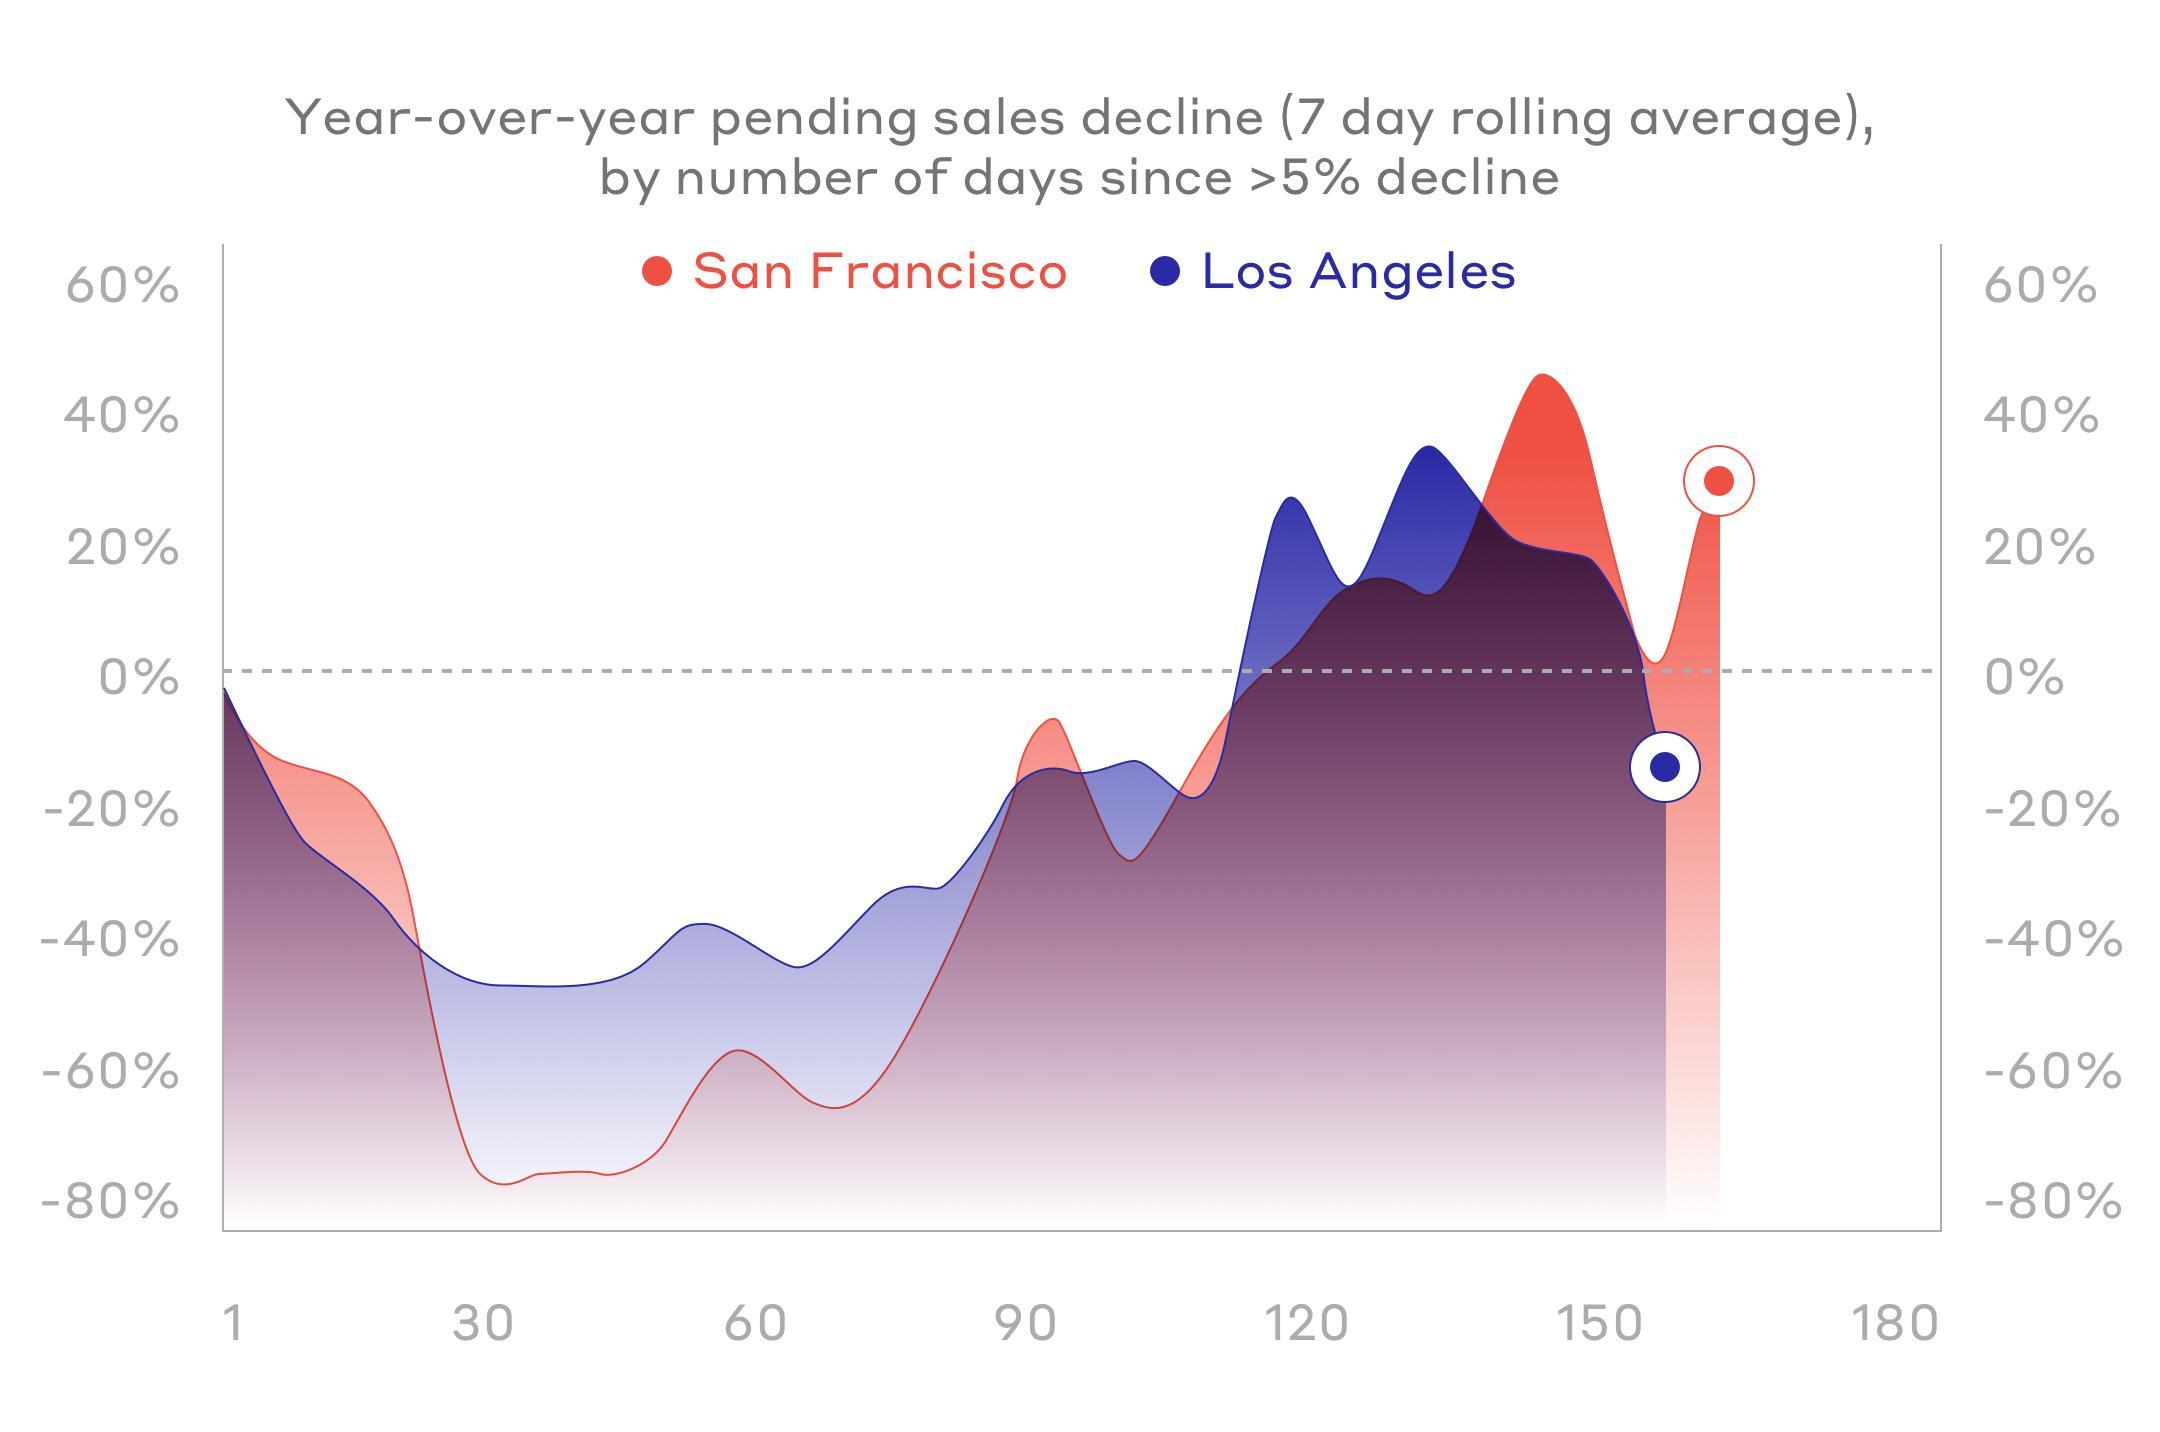 Year-over-year pending sales decline (7 day rolling average) by number of days since >5% decline